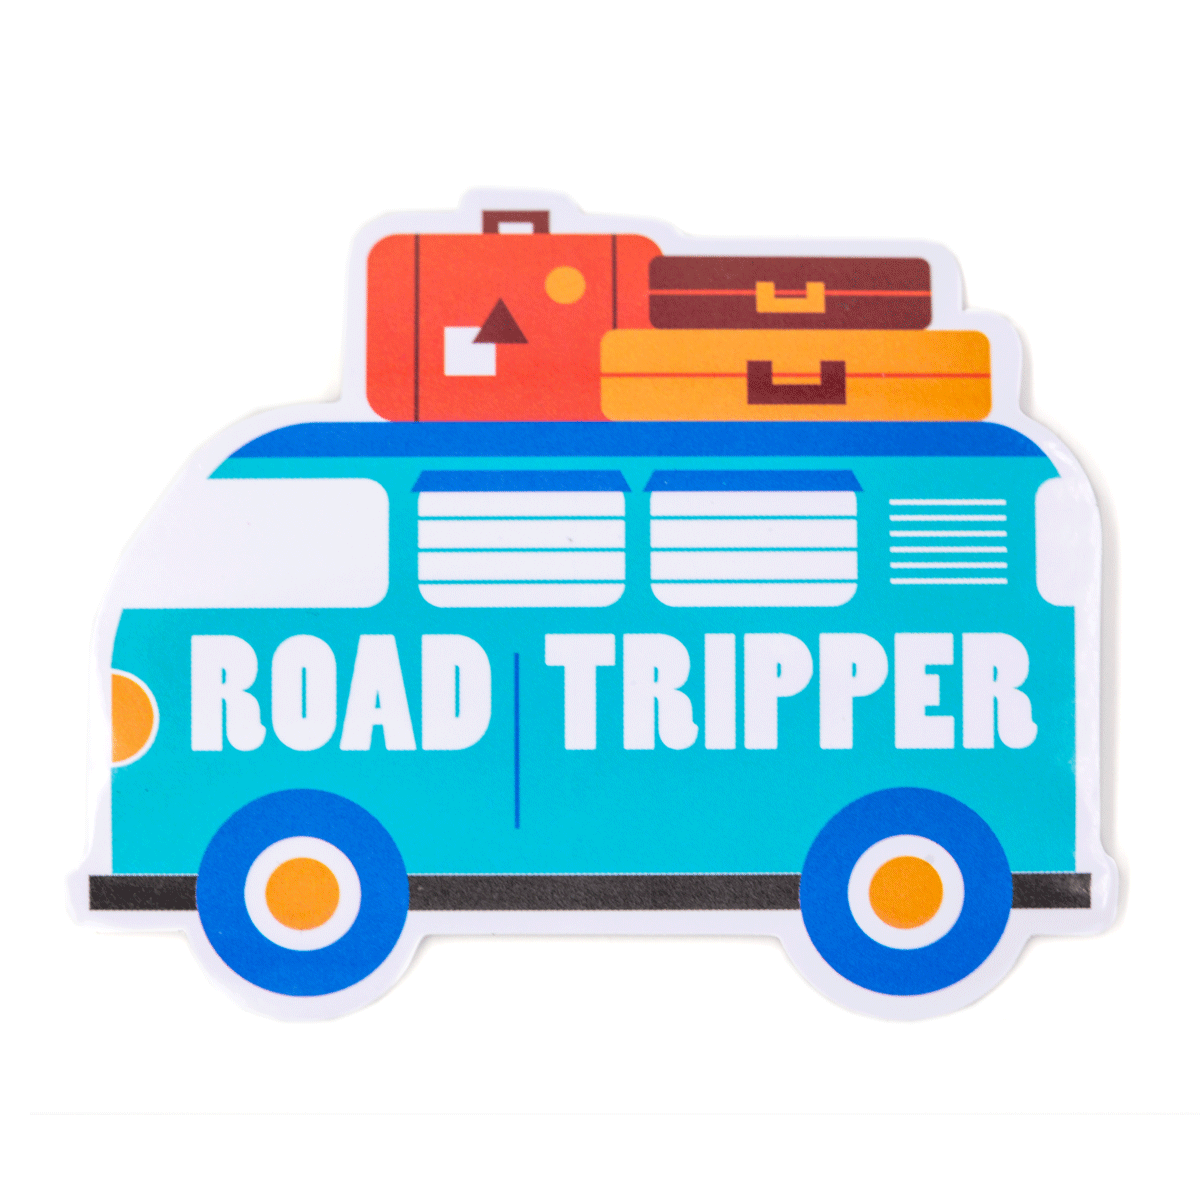 Road Tripper Vinyl Sticker